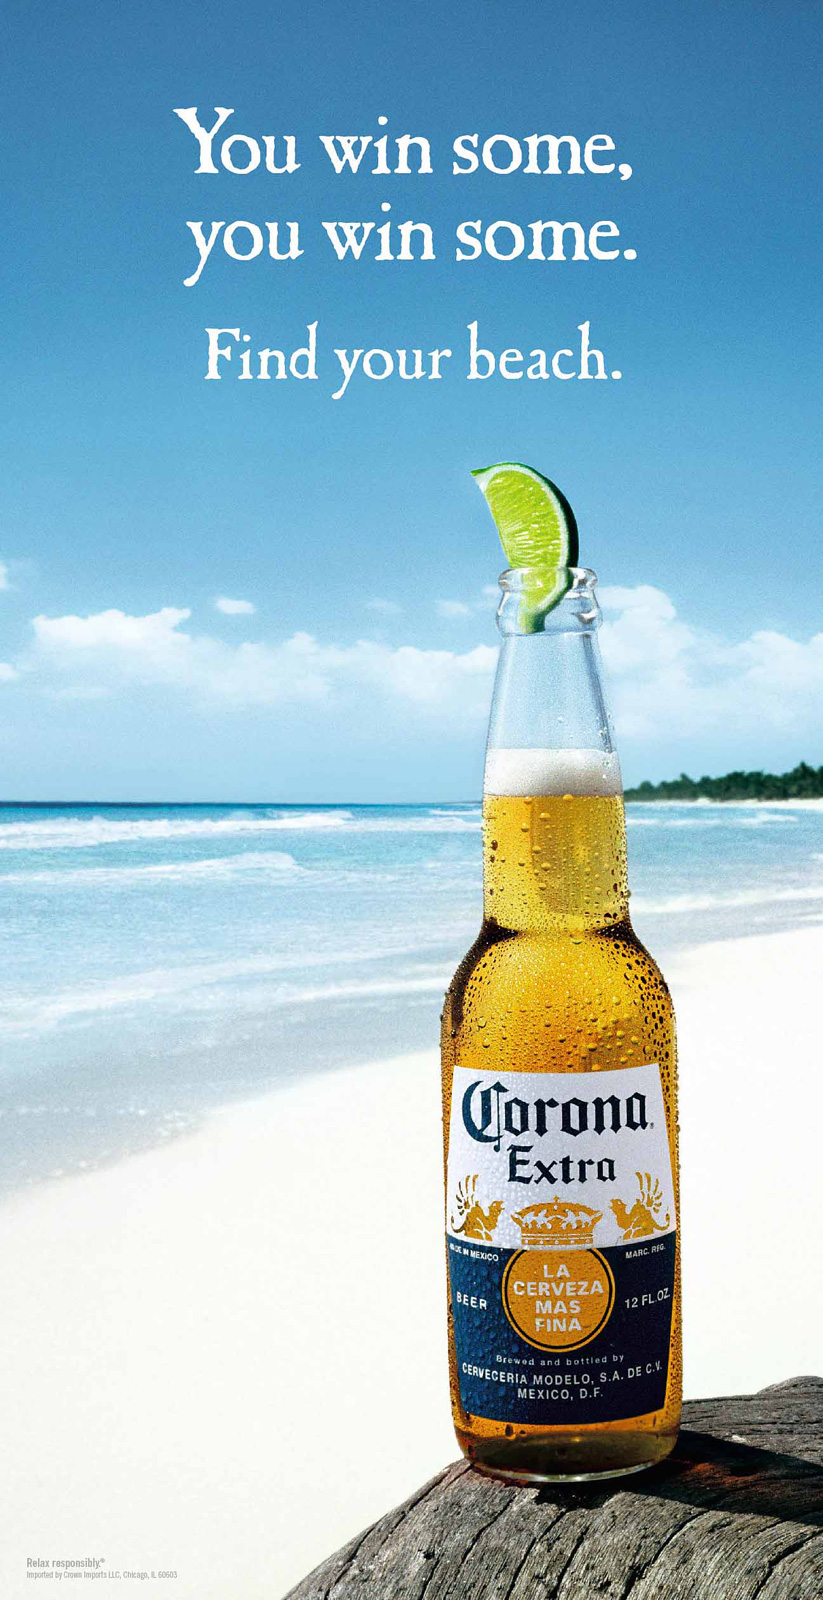 Corona Find Your Beach Wallpaper